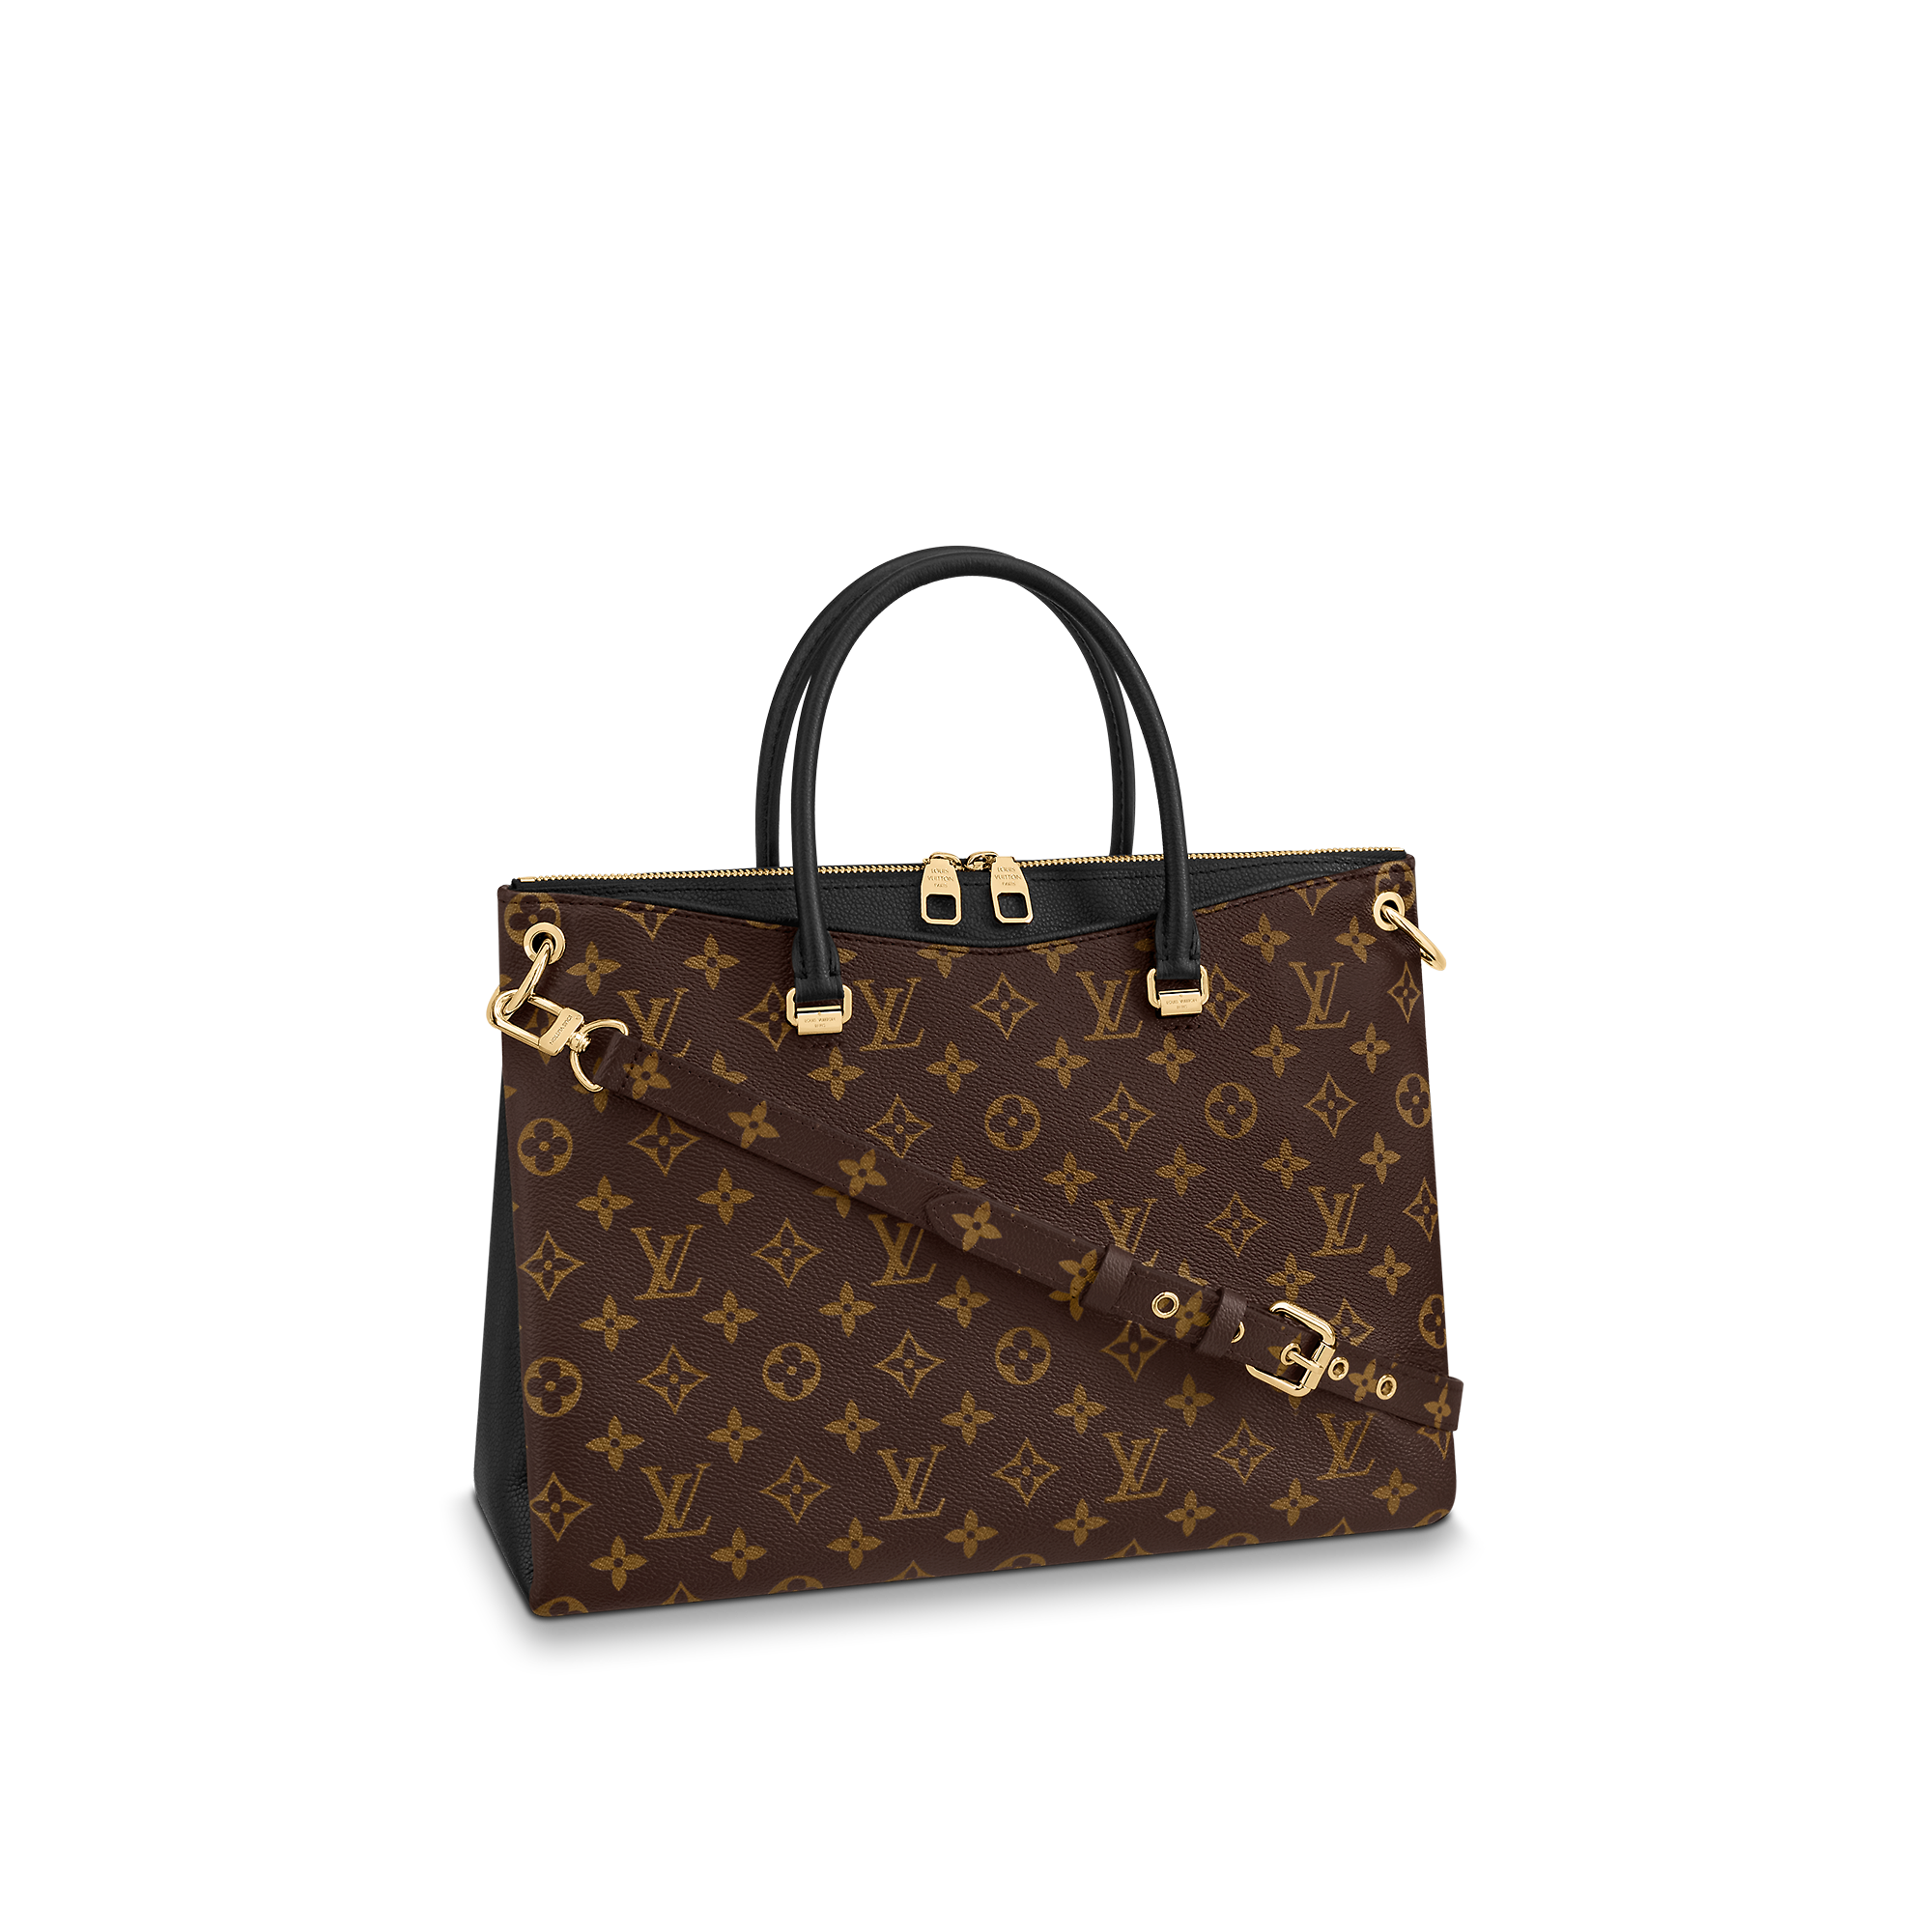 Pin By Mieu Bảo On My Style Louis Vuitton Pallas Louis Vuitton Handbags Louis Vuitton Bag